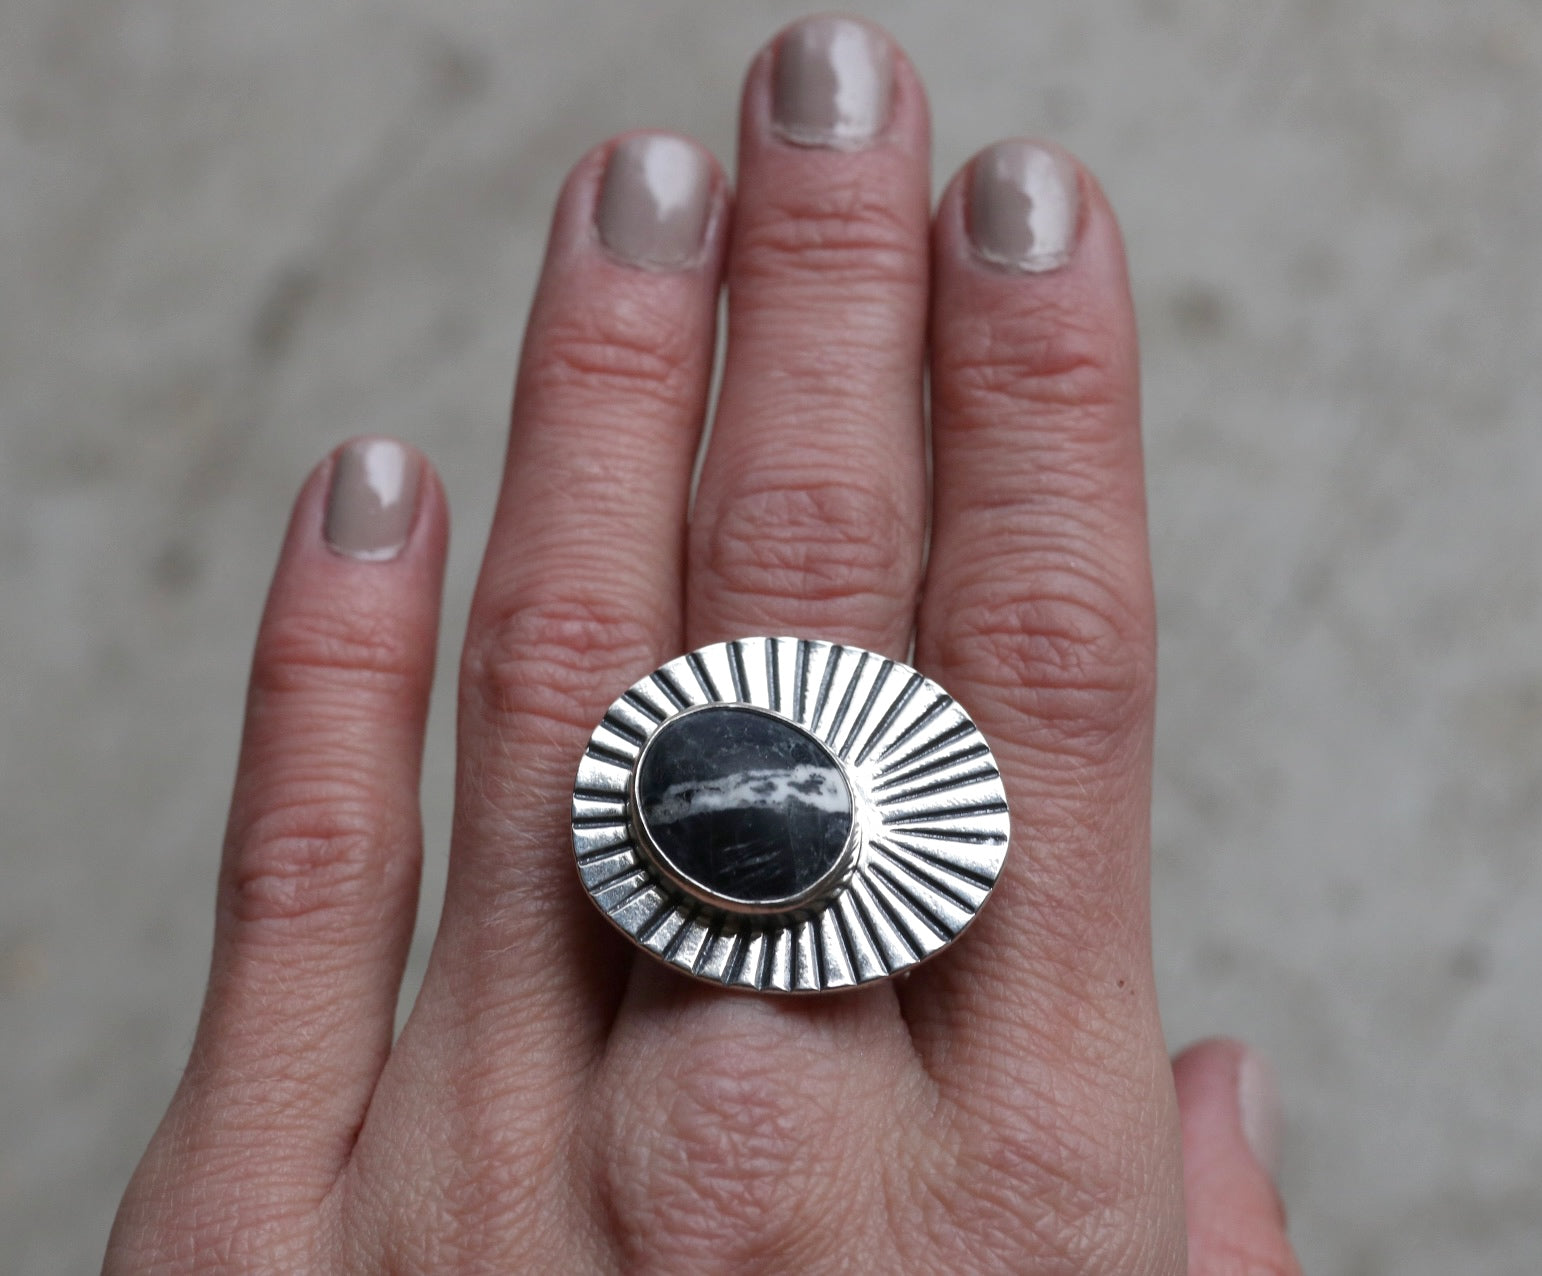 Sunburst Ring #18 - Size 8